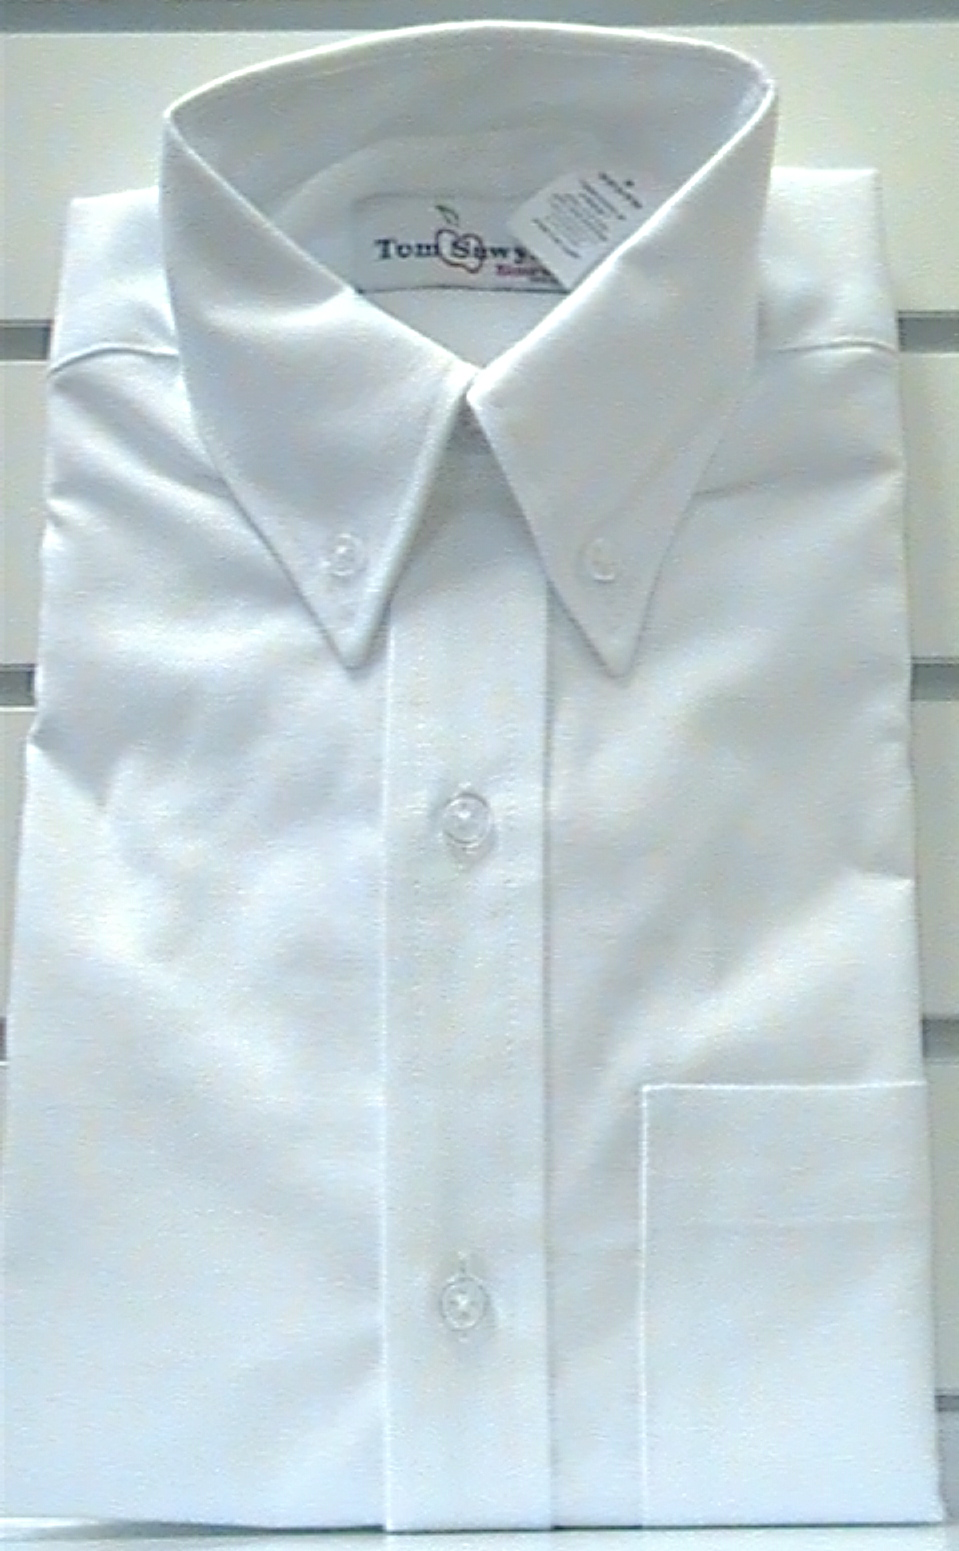 WhiteLong SleeveOxfordcloth Buttondown Collar Shirt